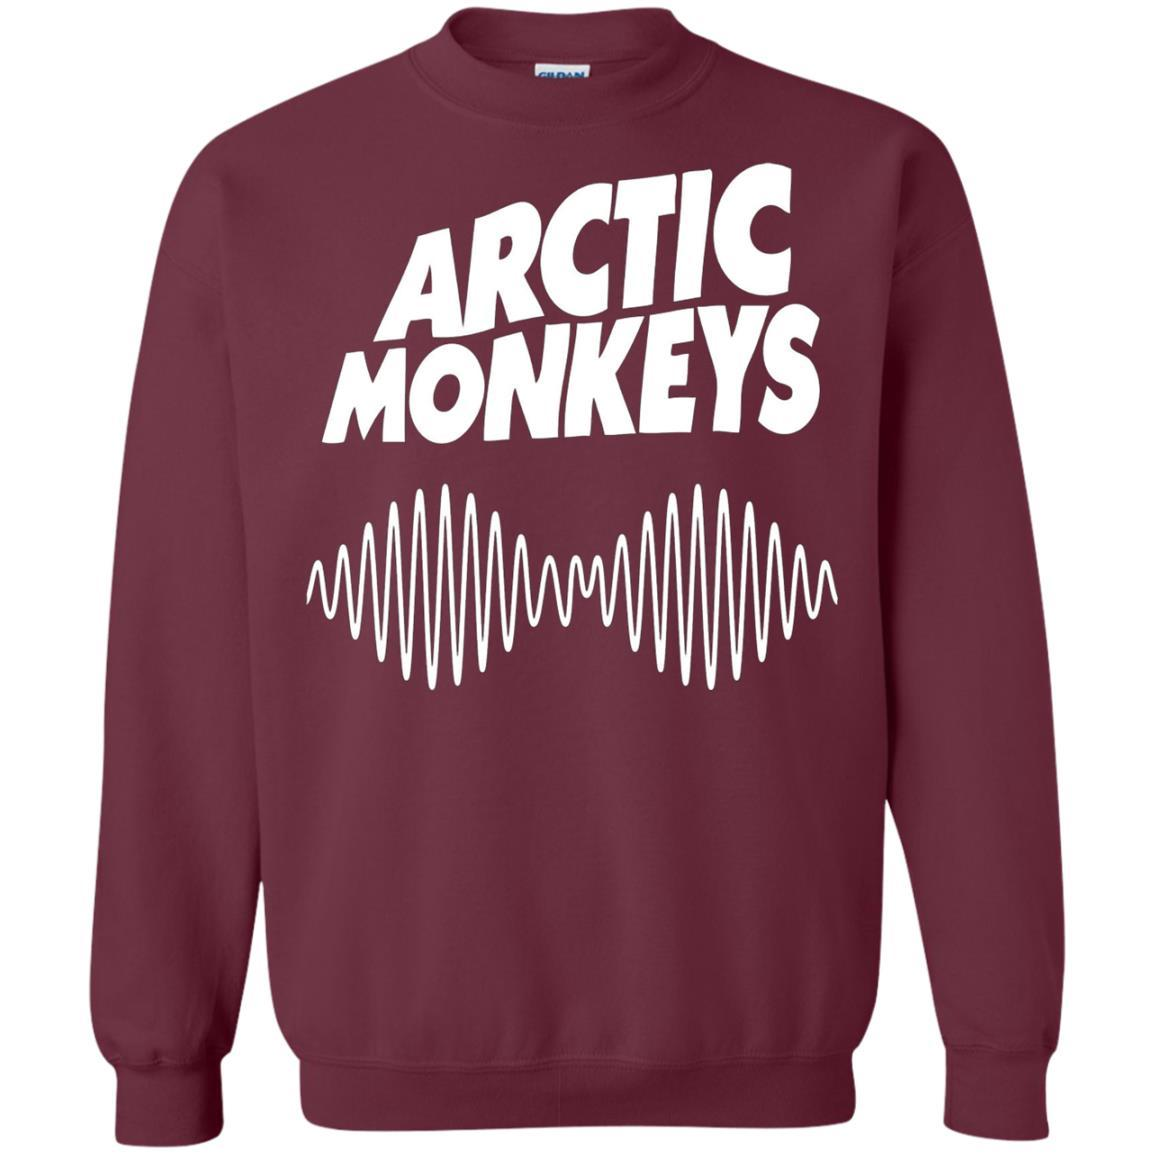 Artic Monkeys Soundwave Music Band Tshirt Maroon / 5XL